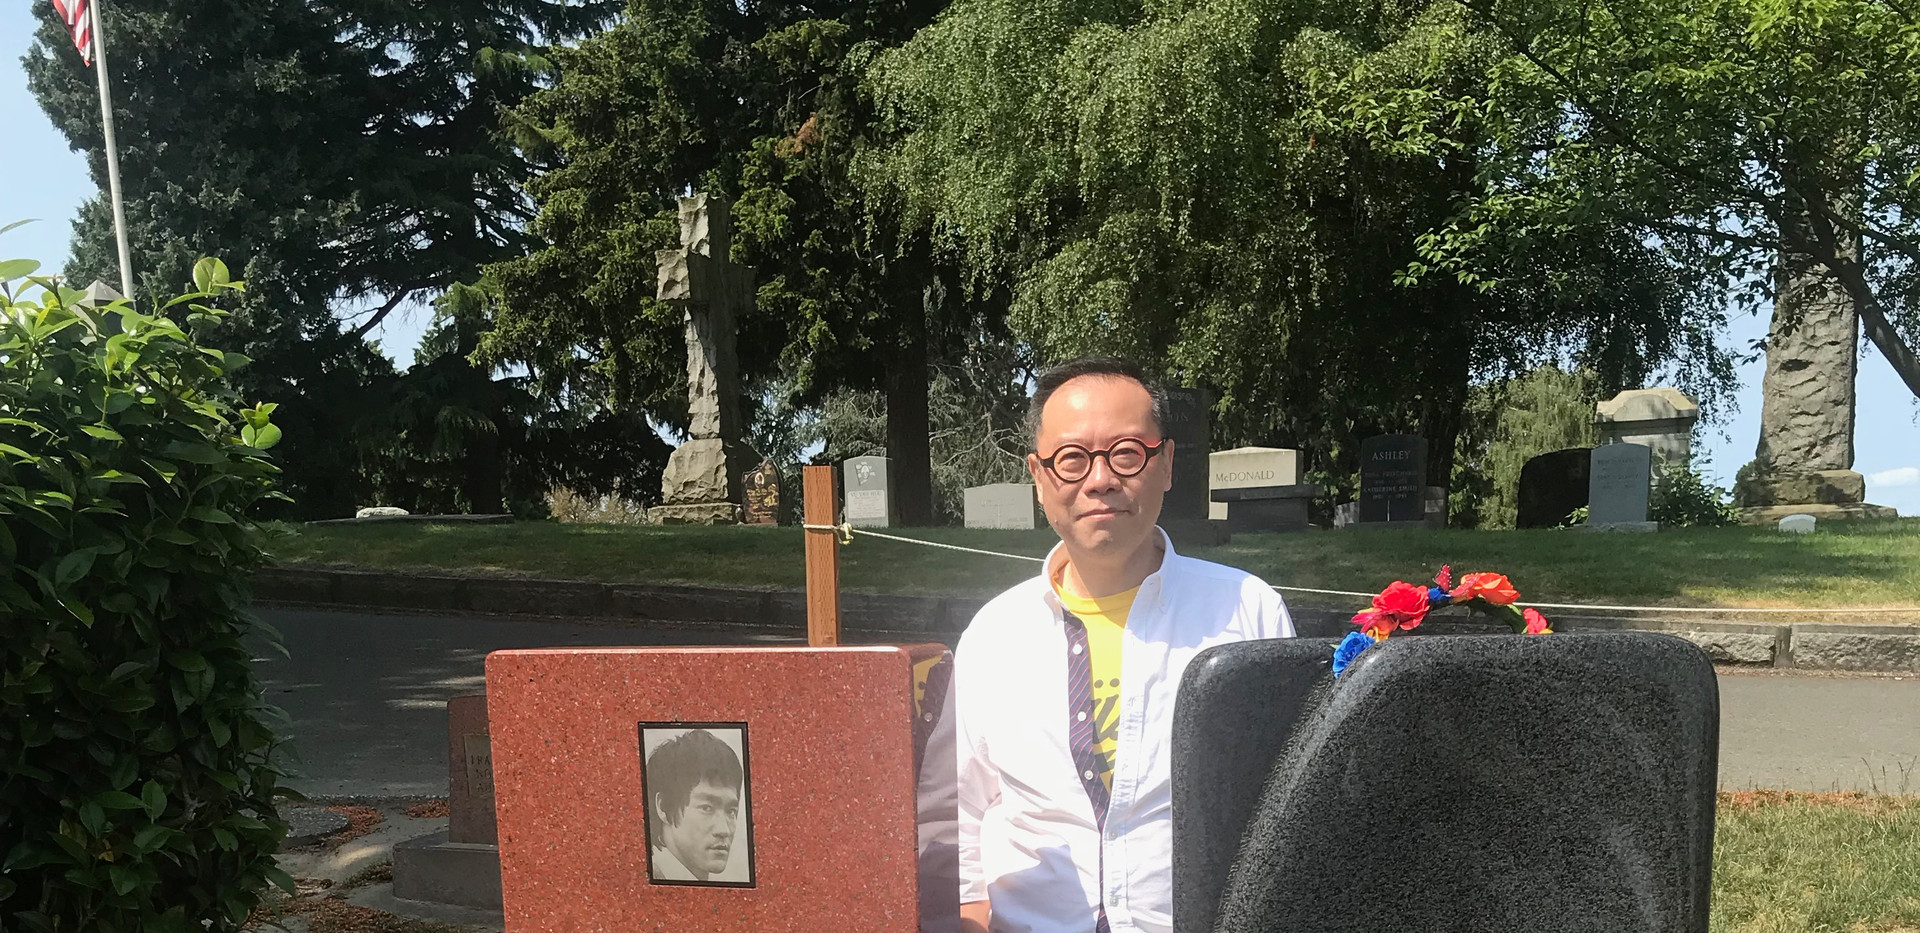 Bruce Lee and his son @ Seattle Jun 2018